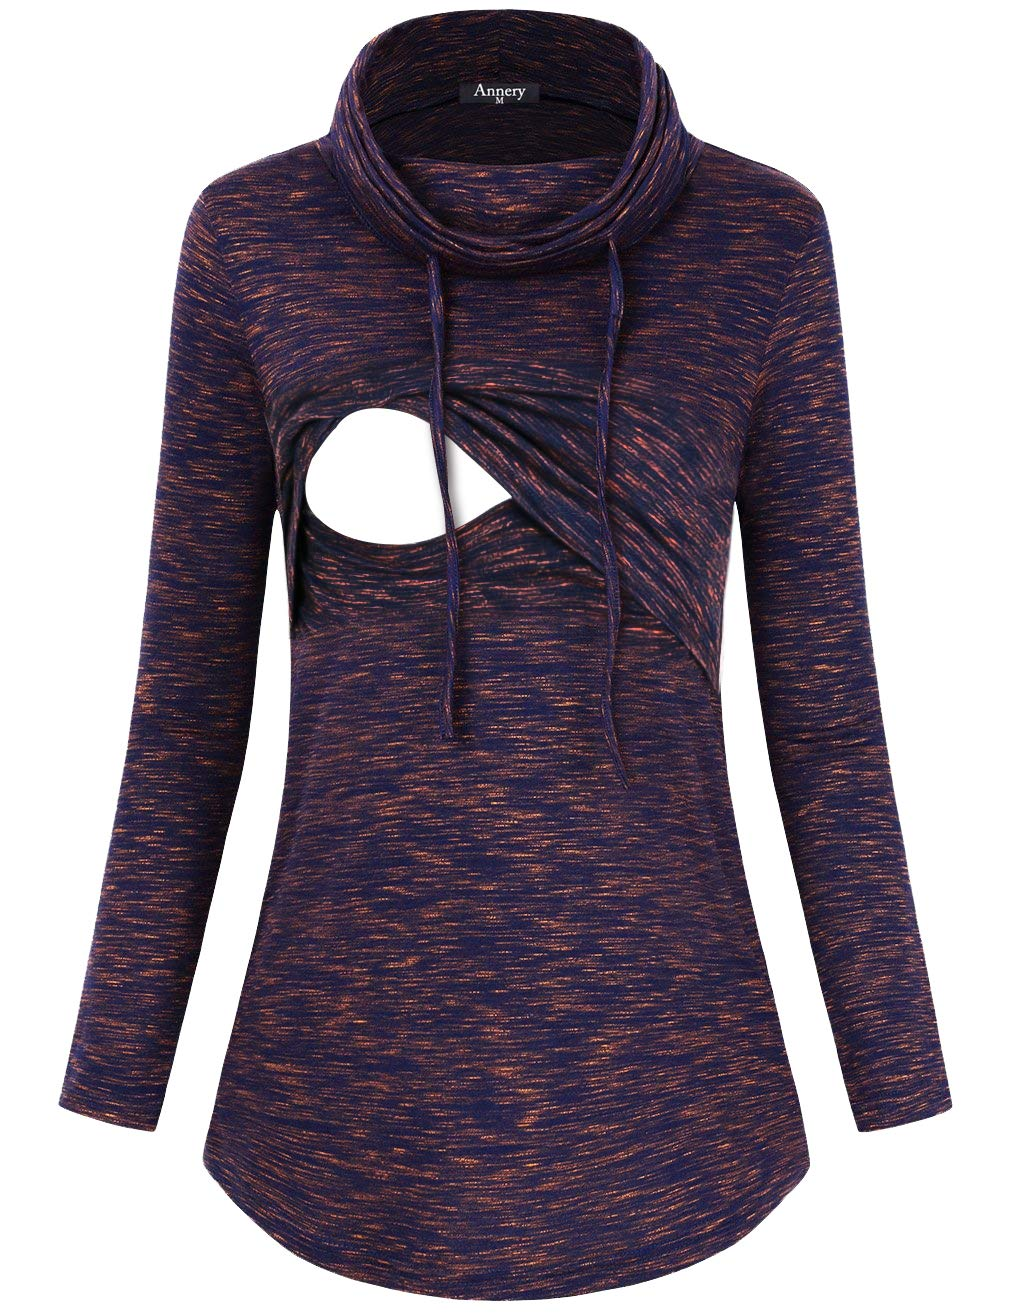 Annery Postpartum Clothes for Women, Juniors Motherhood Maternity Nursing Shirts Lift Up Breastfeeding Sweatshirt Top Latched Mama Clothes(Violet,X-Large)